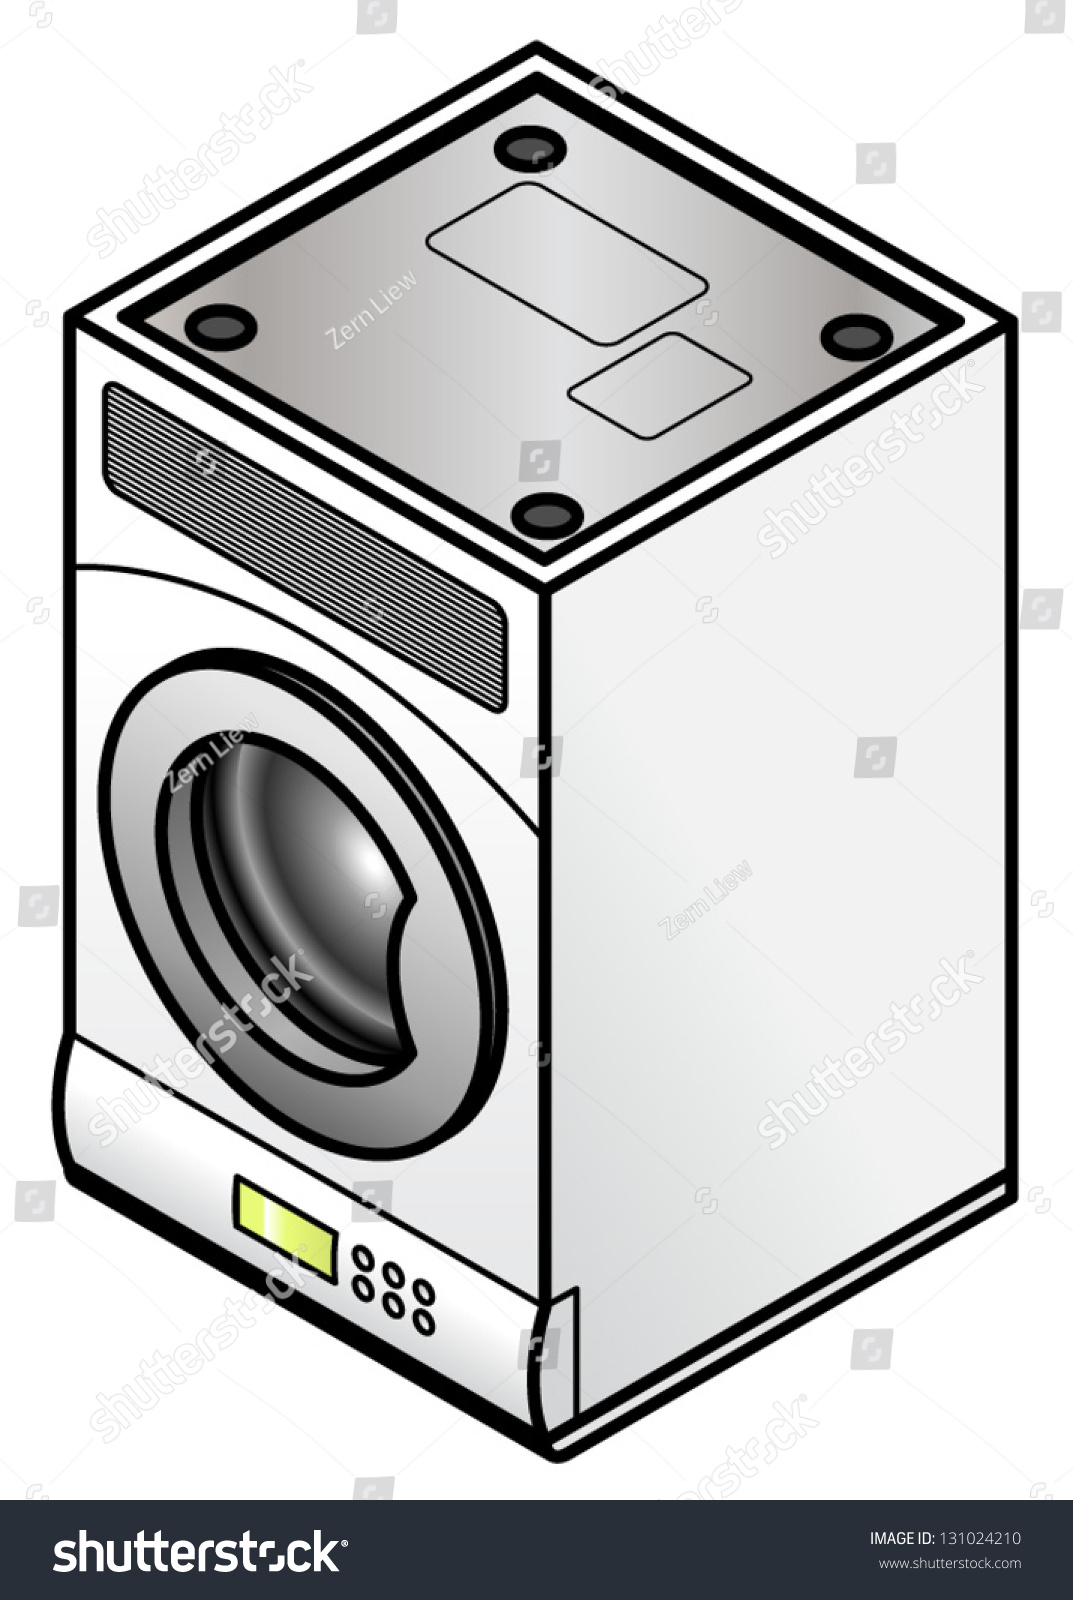 Washer And Dryer Clipart a clothes dryer configured for upside down wall mounting (above